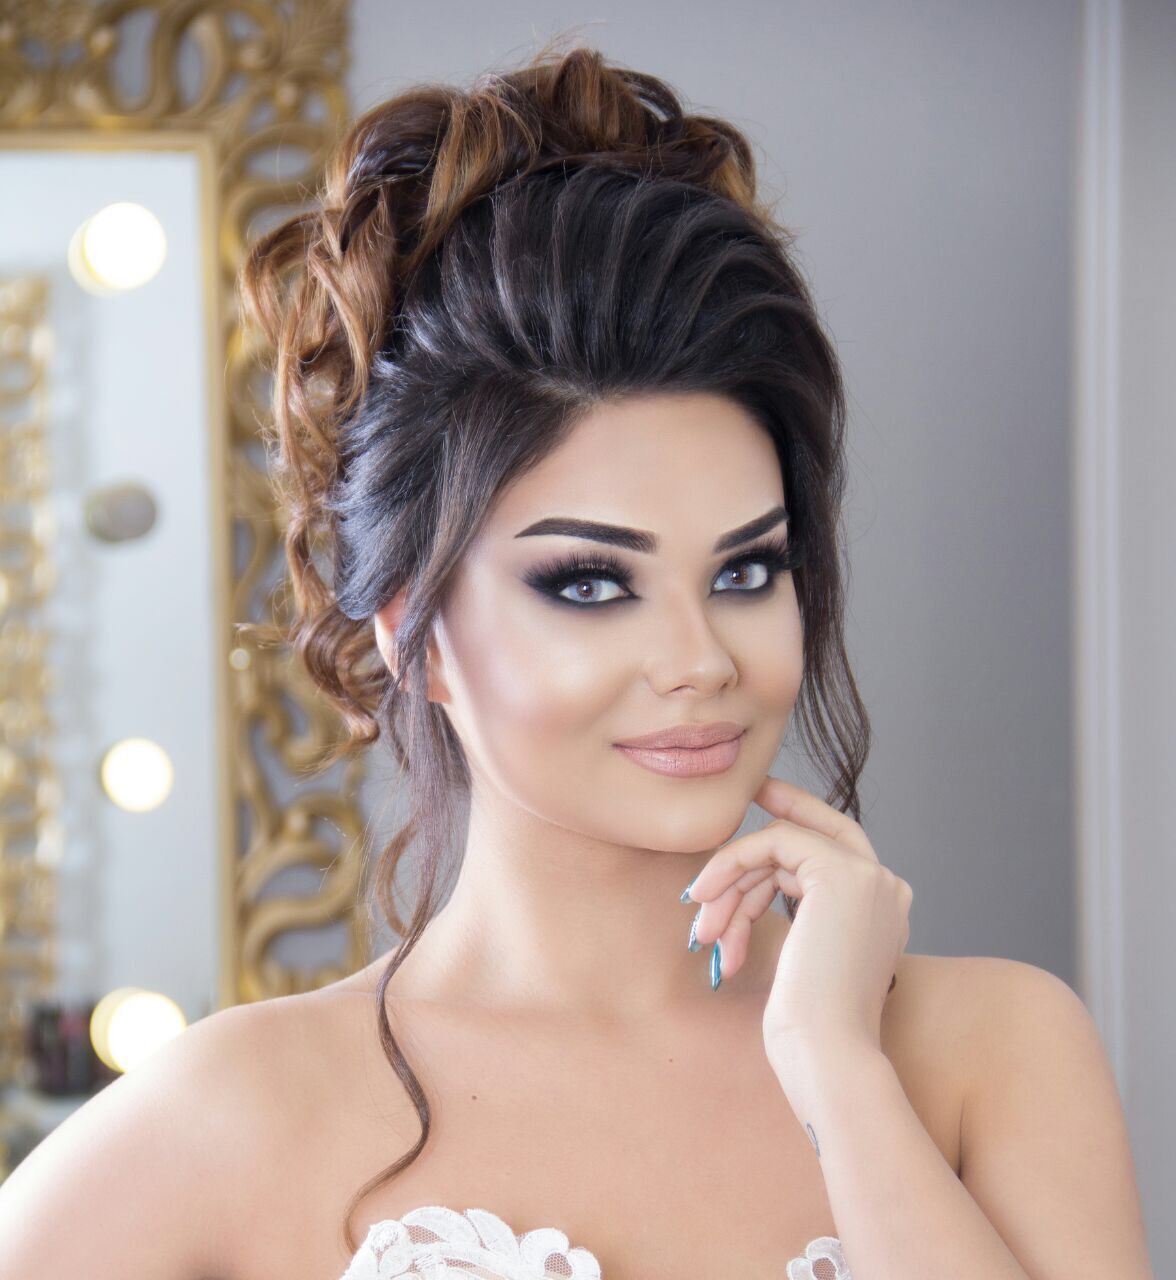 Wagging Make Up Hair Style Hair Stylist Life Bridal Hair Buns Front Hair Styles